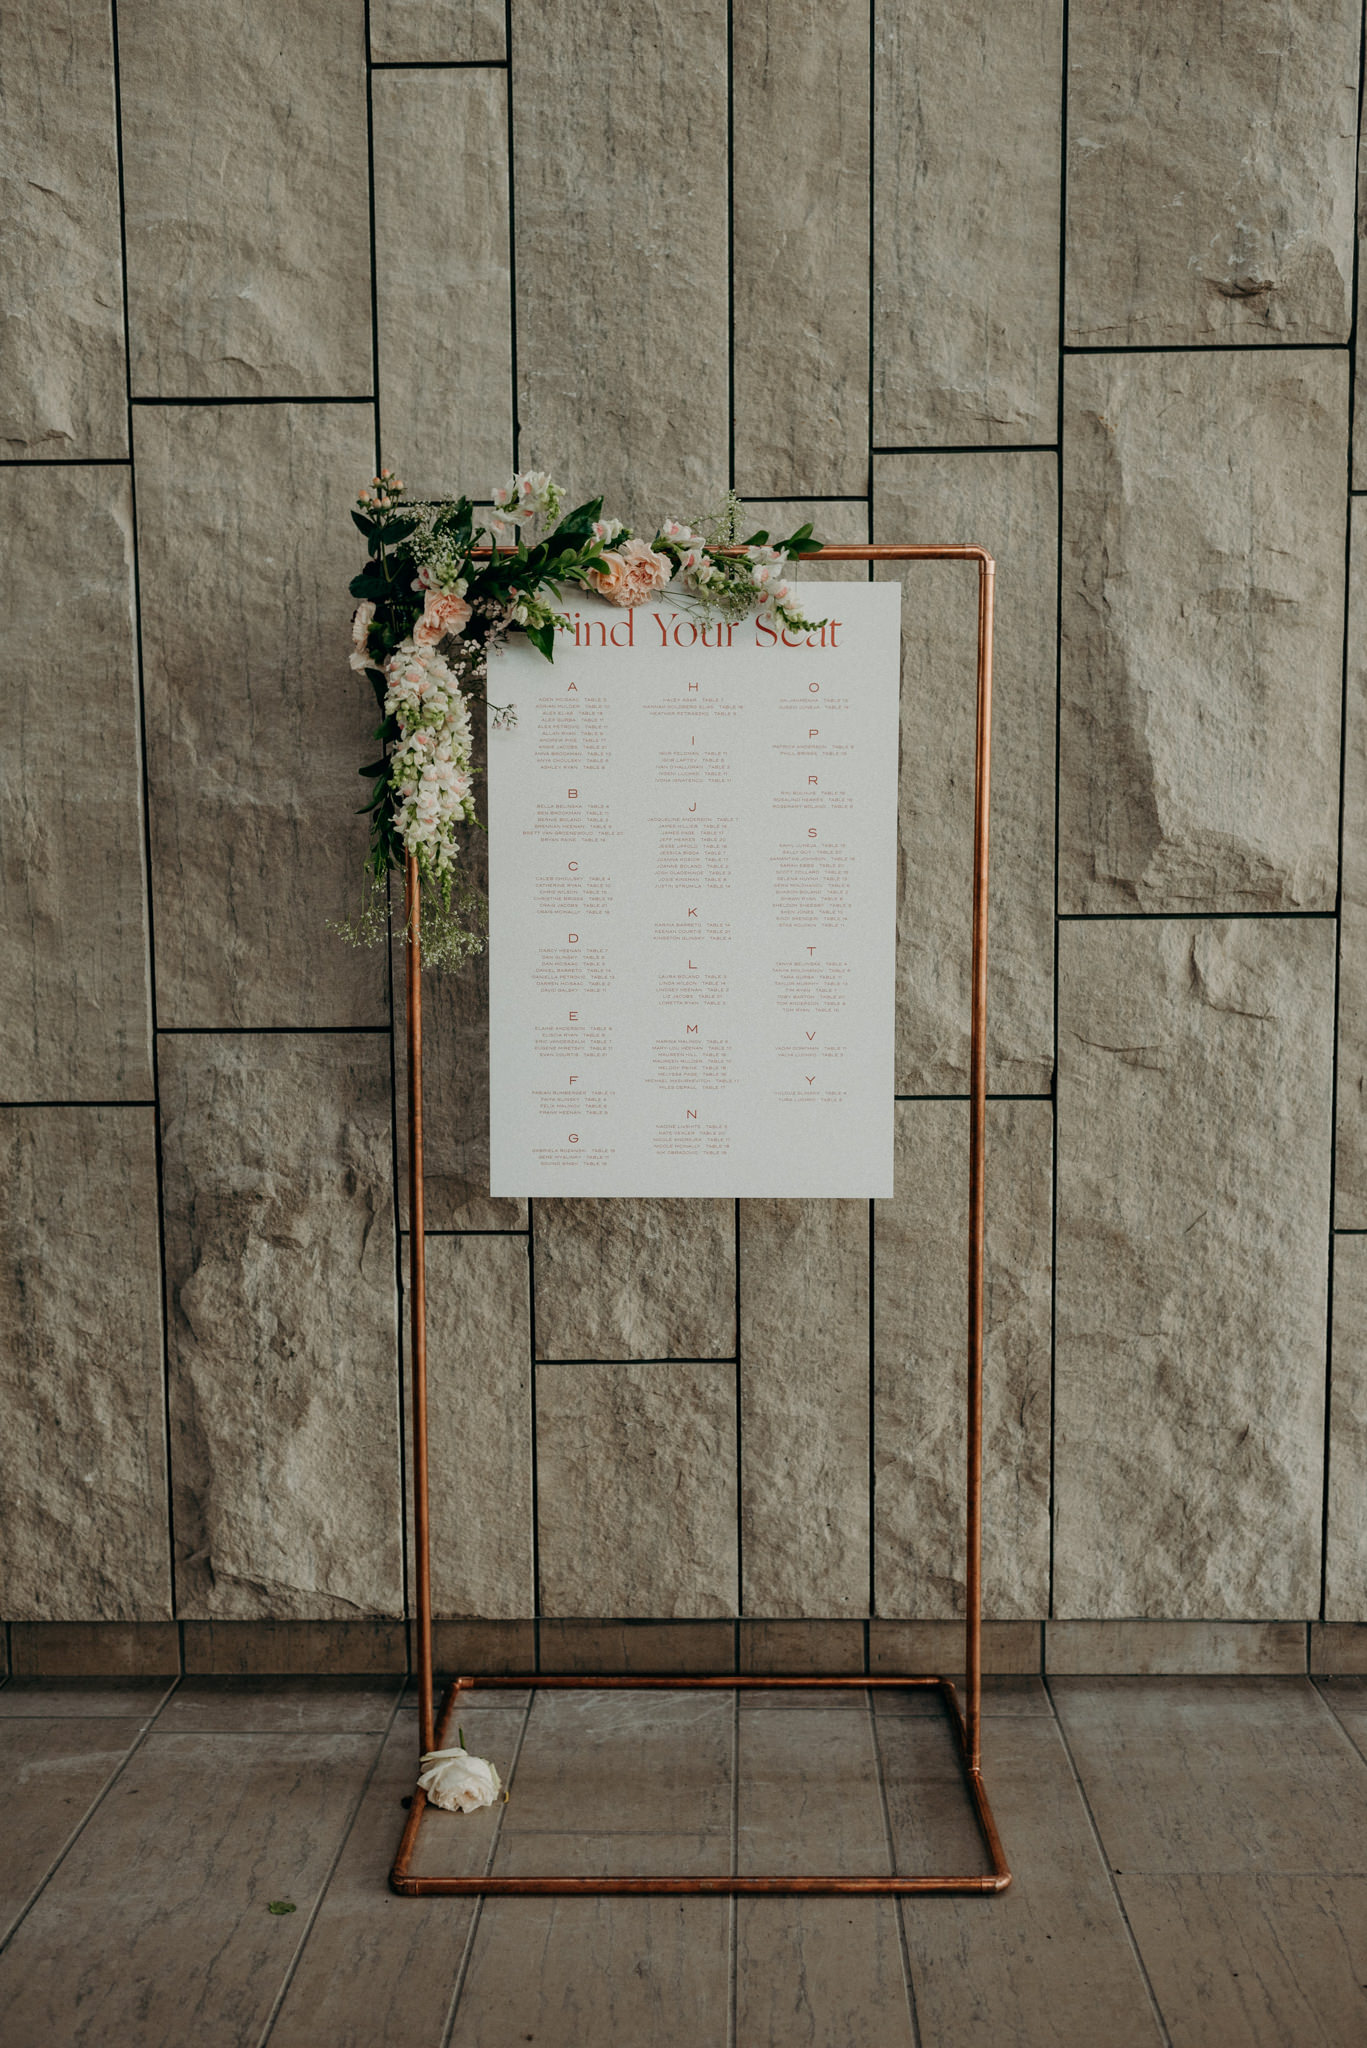 Seating chart with flowers